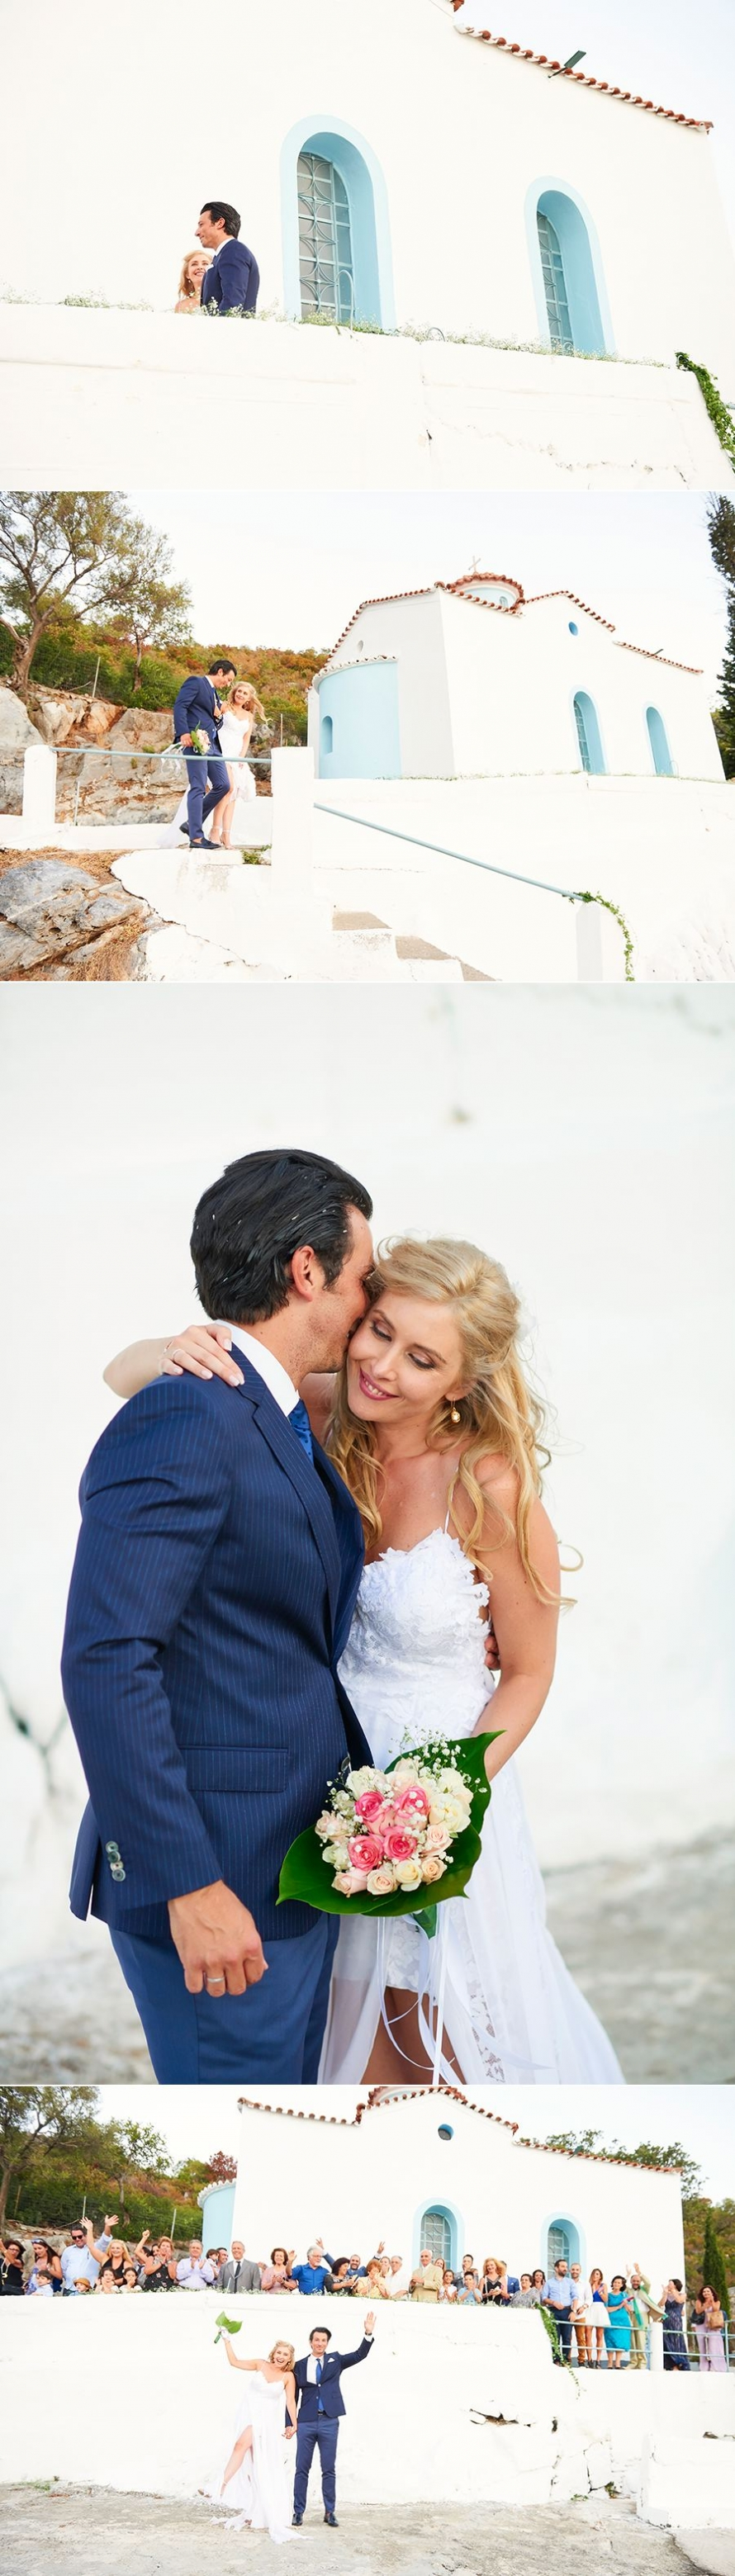 giannis-stella-wedding-photo-11